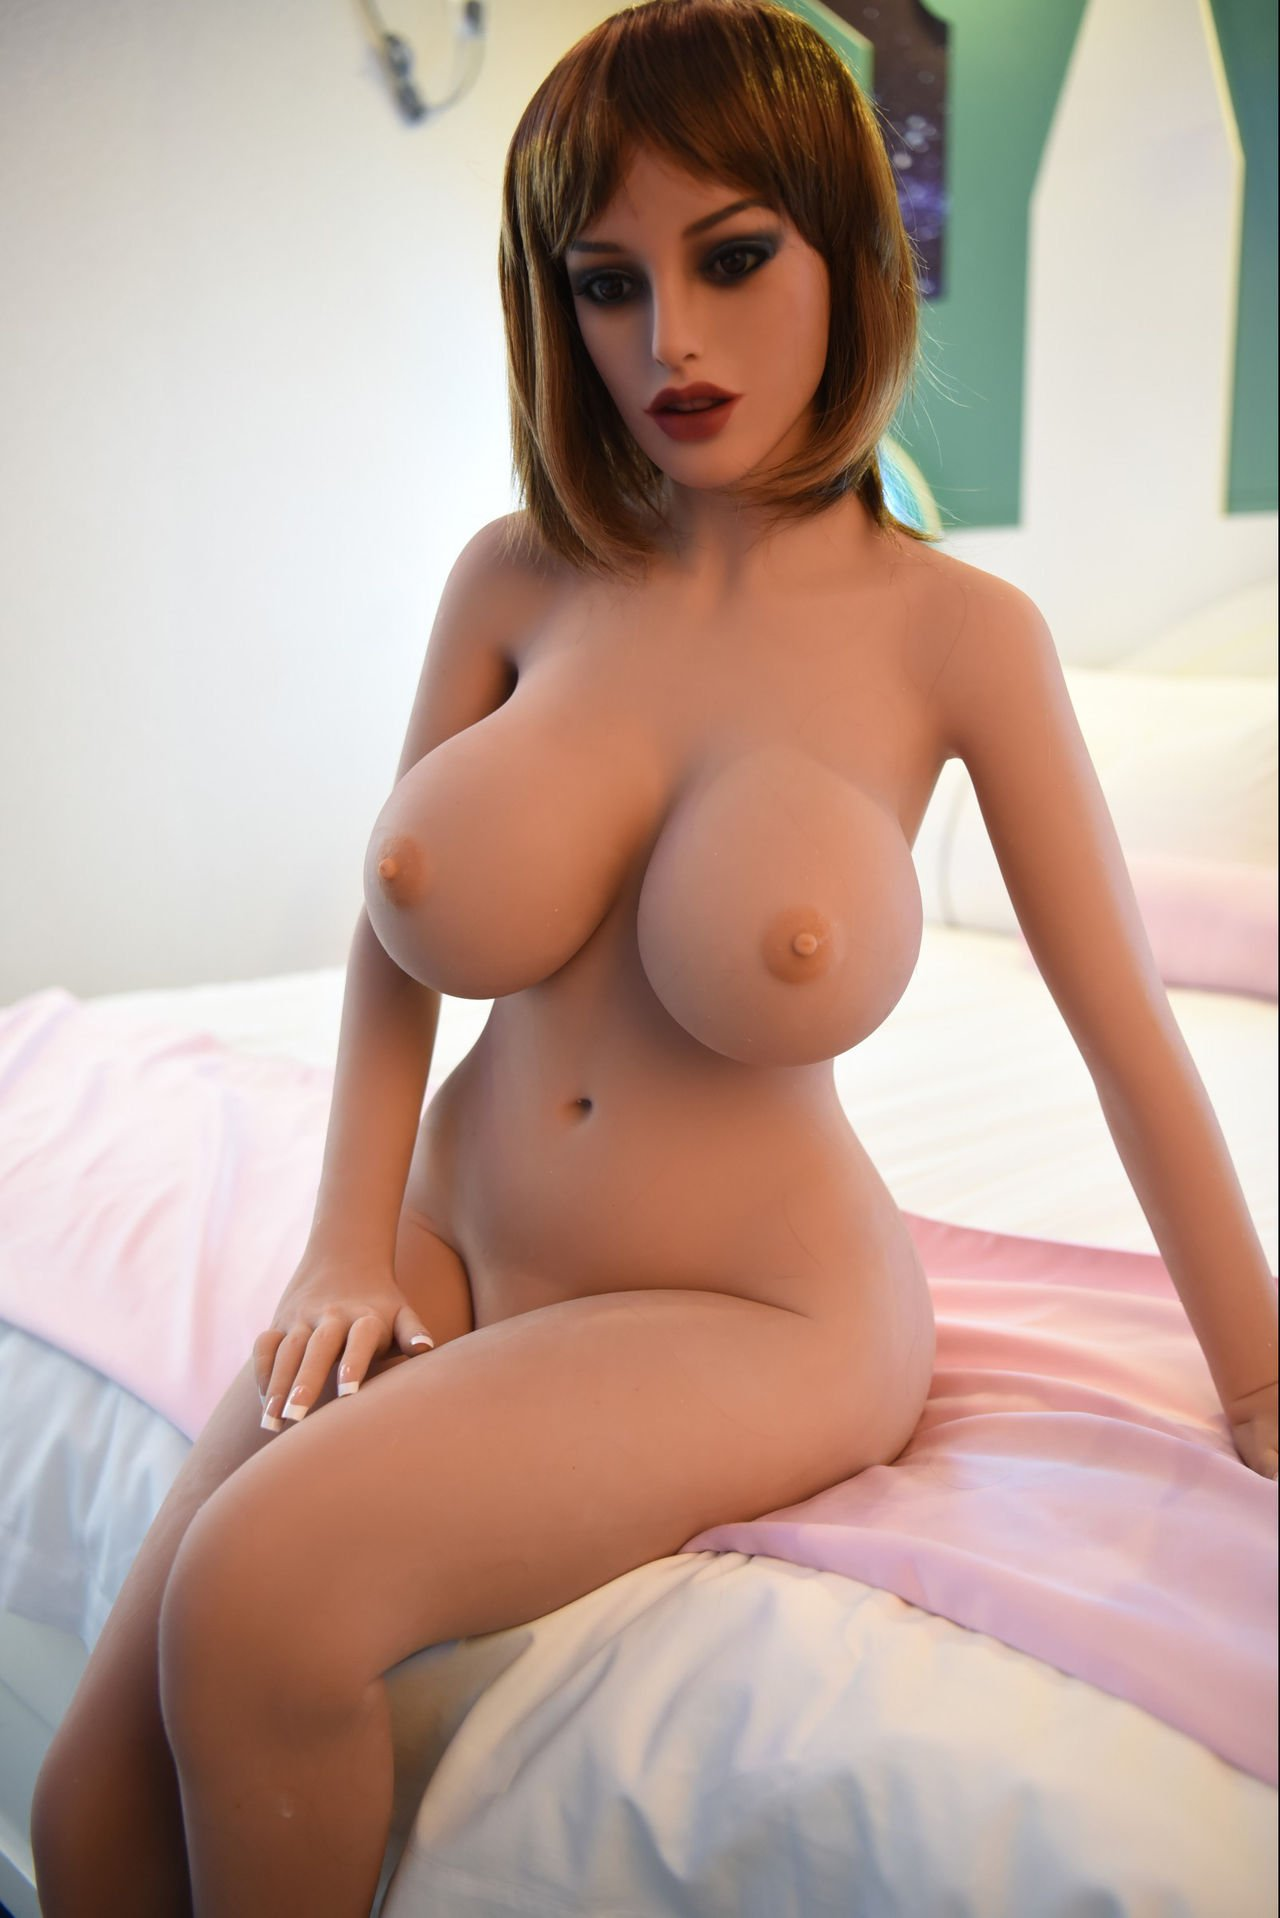 Sex with a sex doll